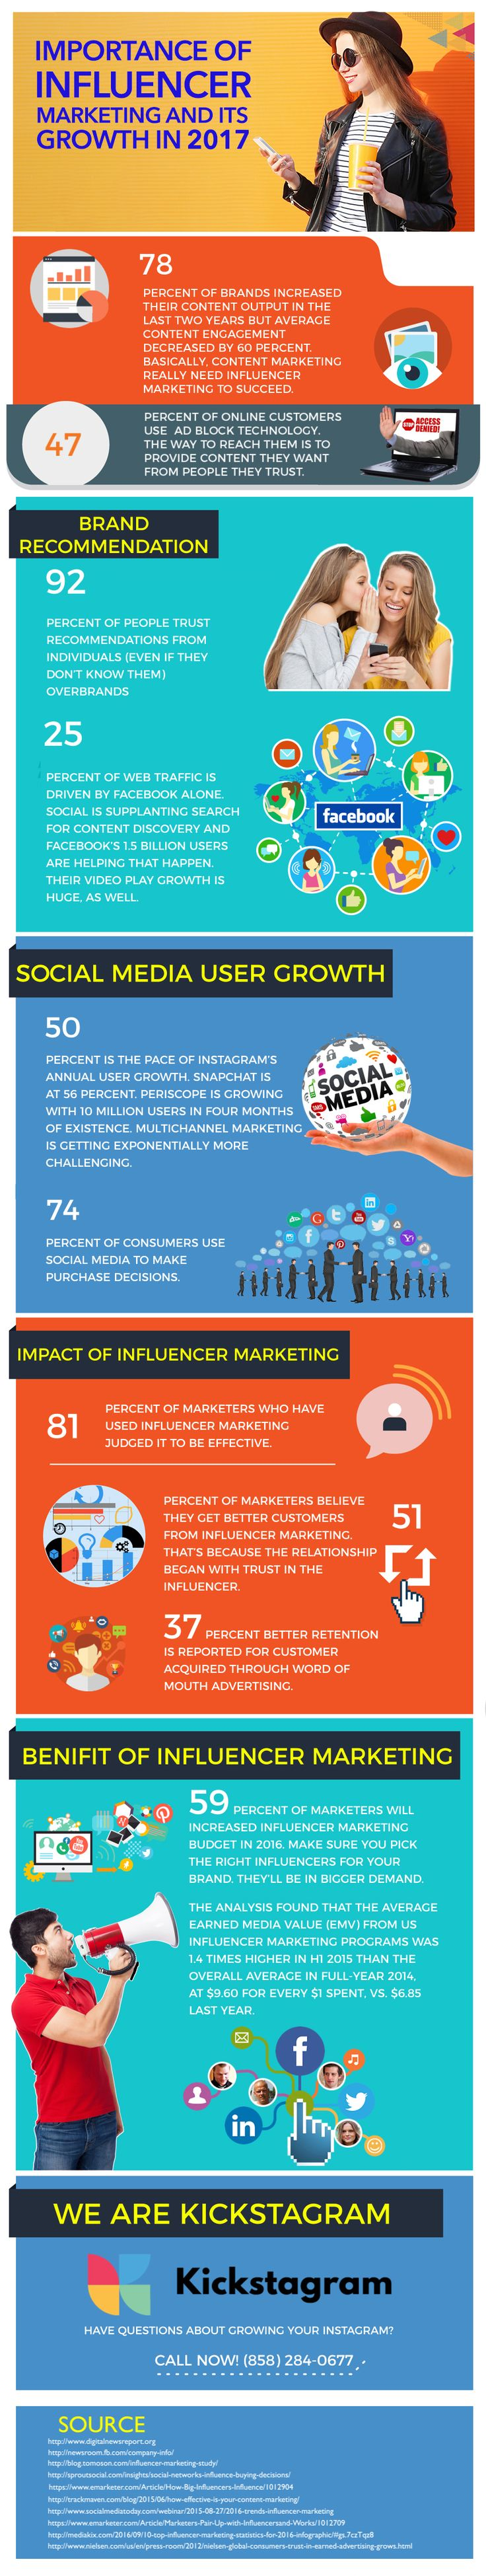 Digital-Marketing-Importance-Of-Influencer-Marketing-And-Its-Growth-In-2017-Infographic-Marketin Digital Marketing : Importance Of Influencer Marketing And Its Growth In 2017 #Infographic #Marketin...